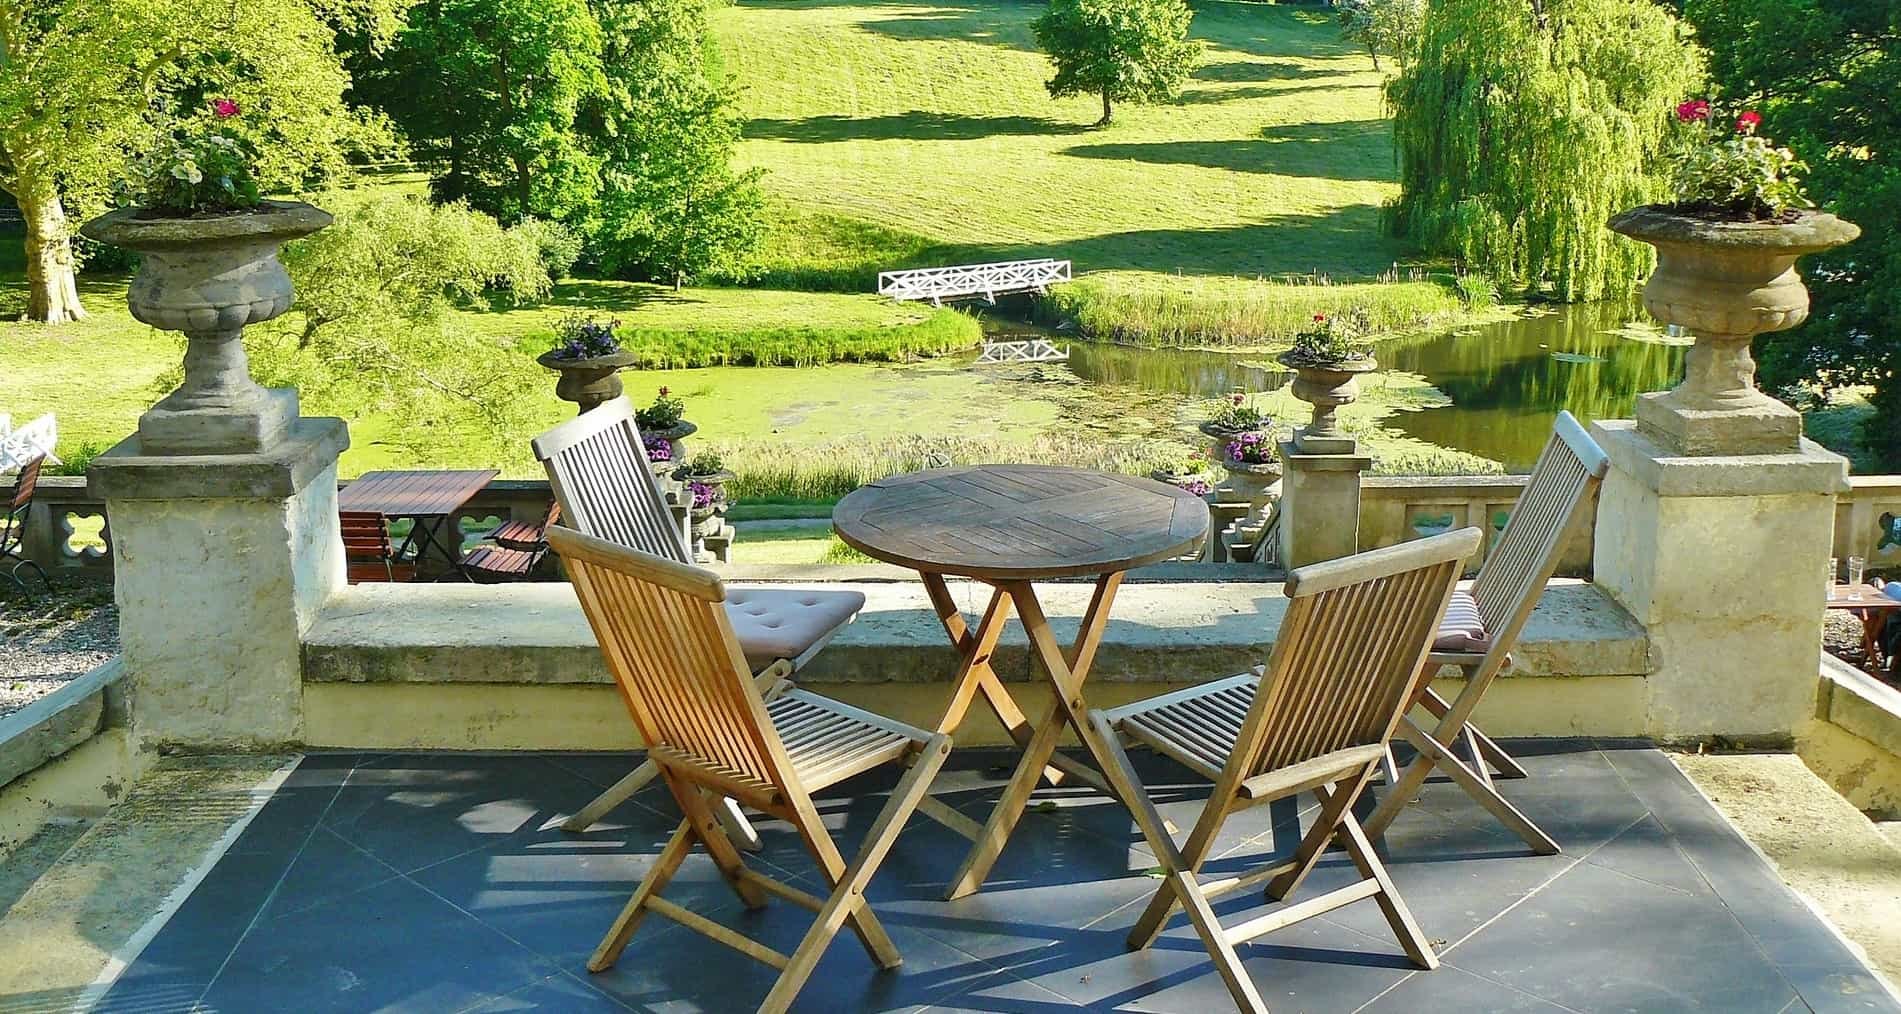 balcony furniture in garden with foldable chairs